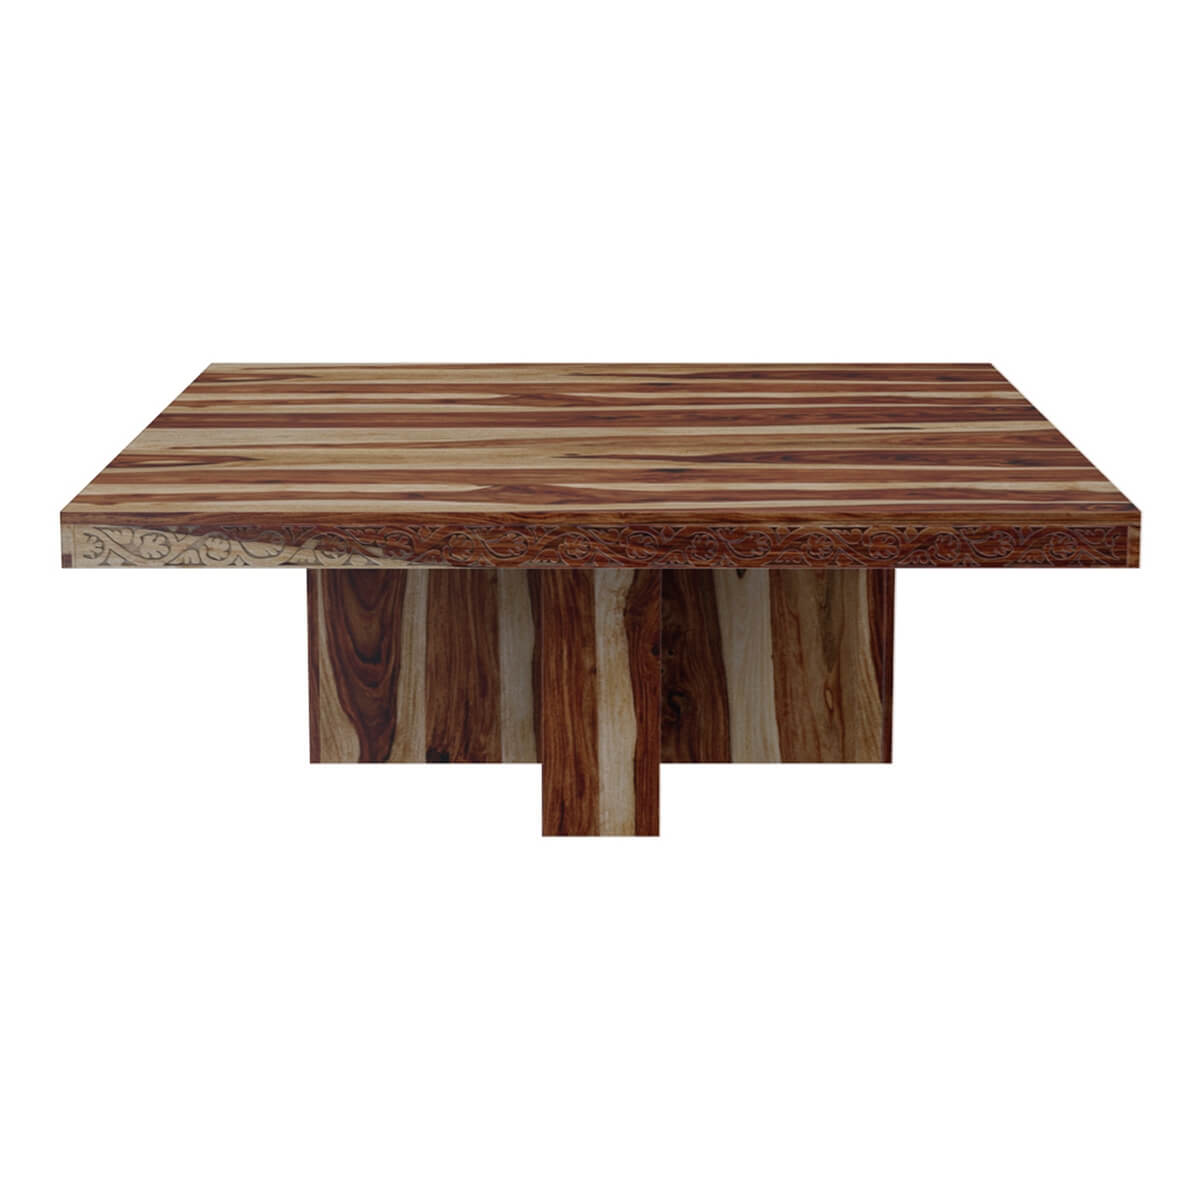 Dallas Ranch Solid Wood Pedestal Rustic Large Square